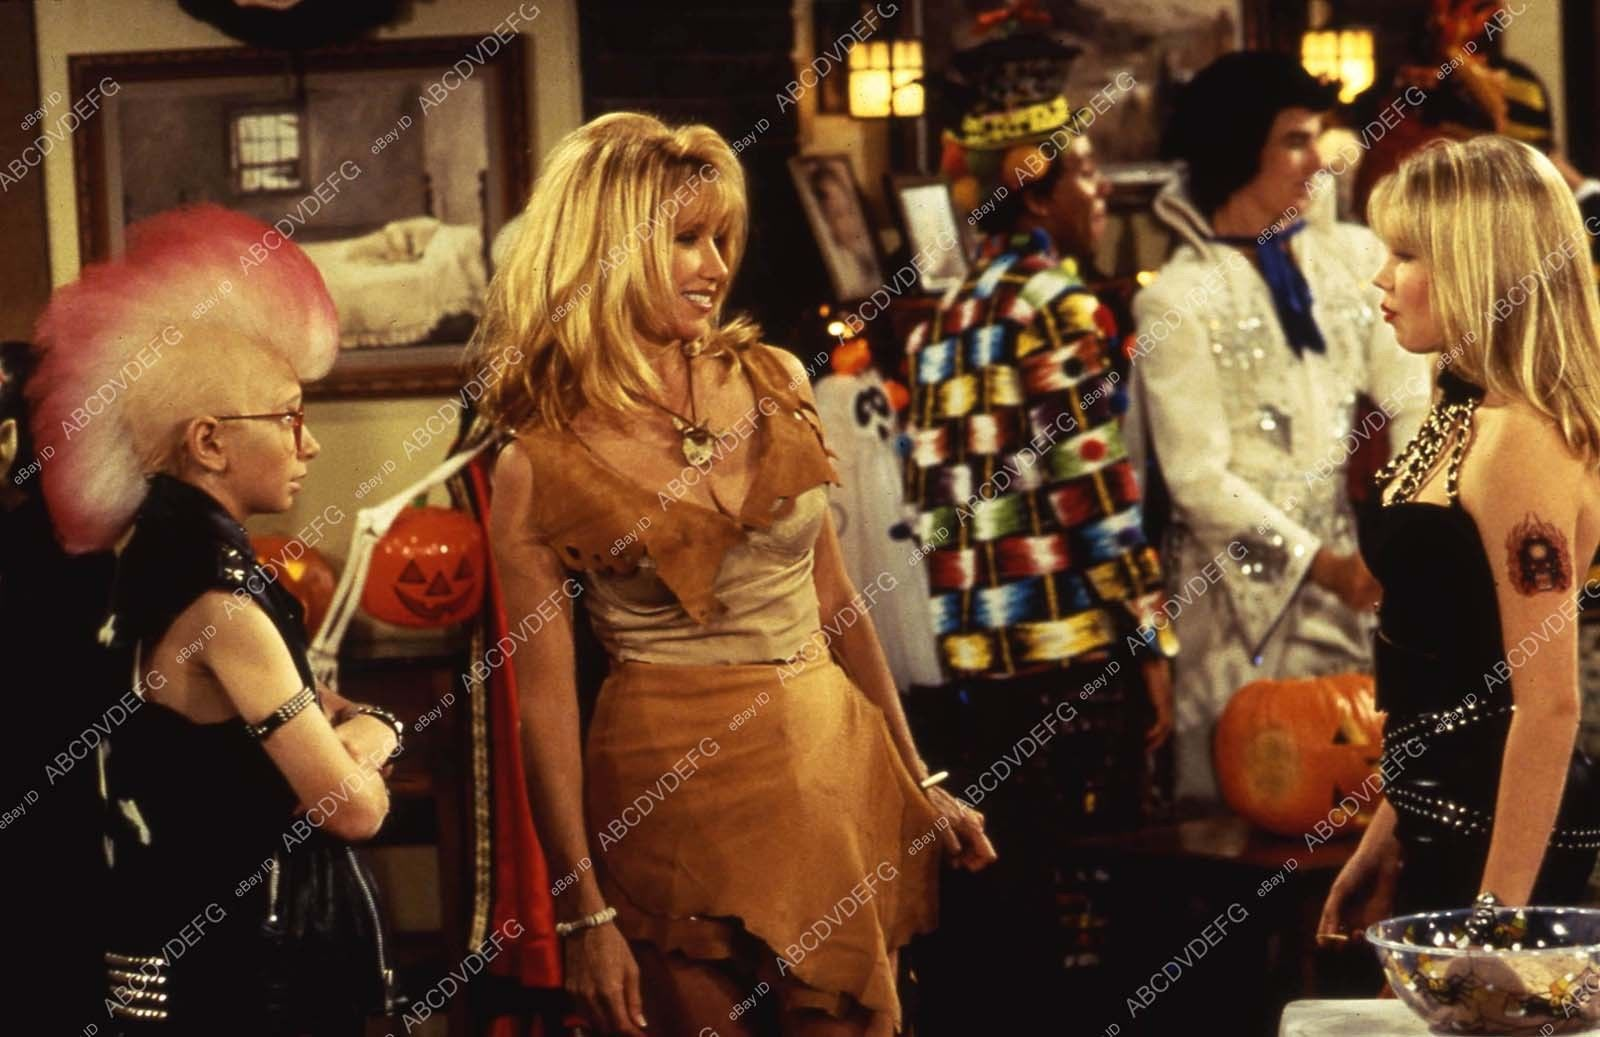 Pic_8x10_Patrick_Duffy_Suzanne_Somers_at_Halloween_costume_party_TV_Step_by_Ste